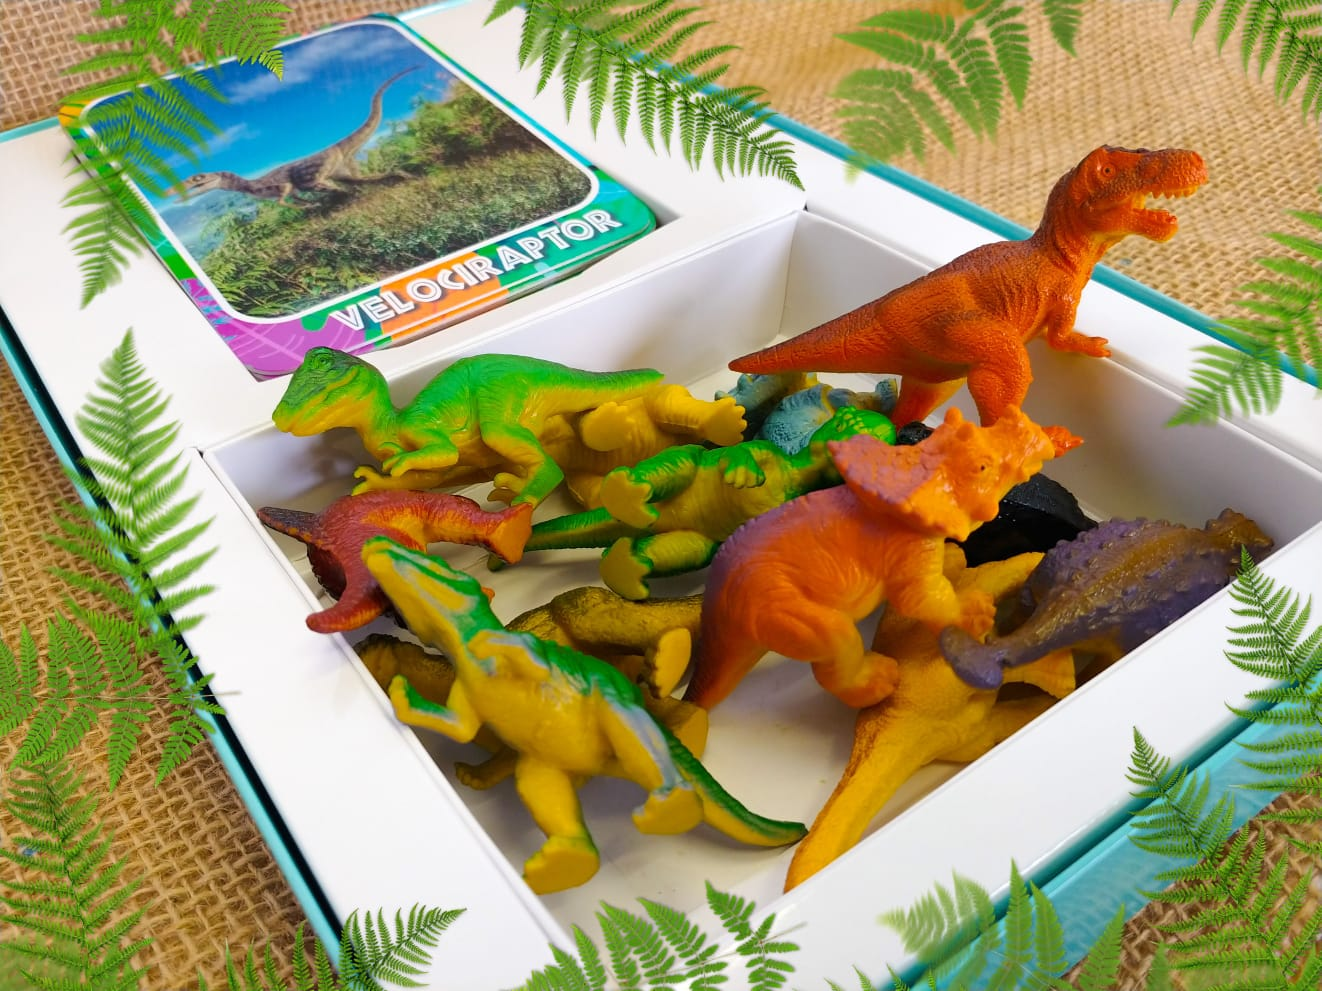 Dinosaur adventure set